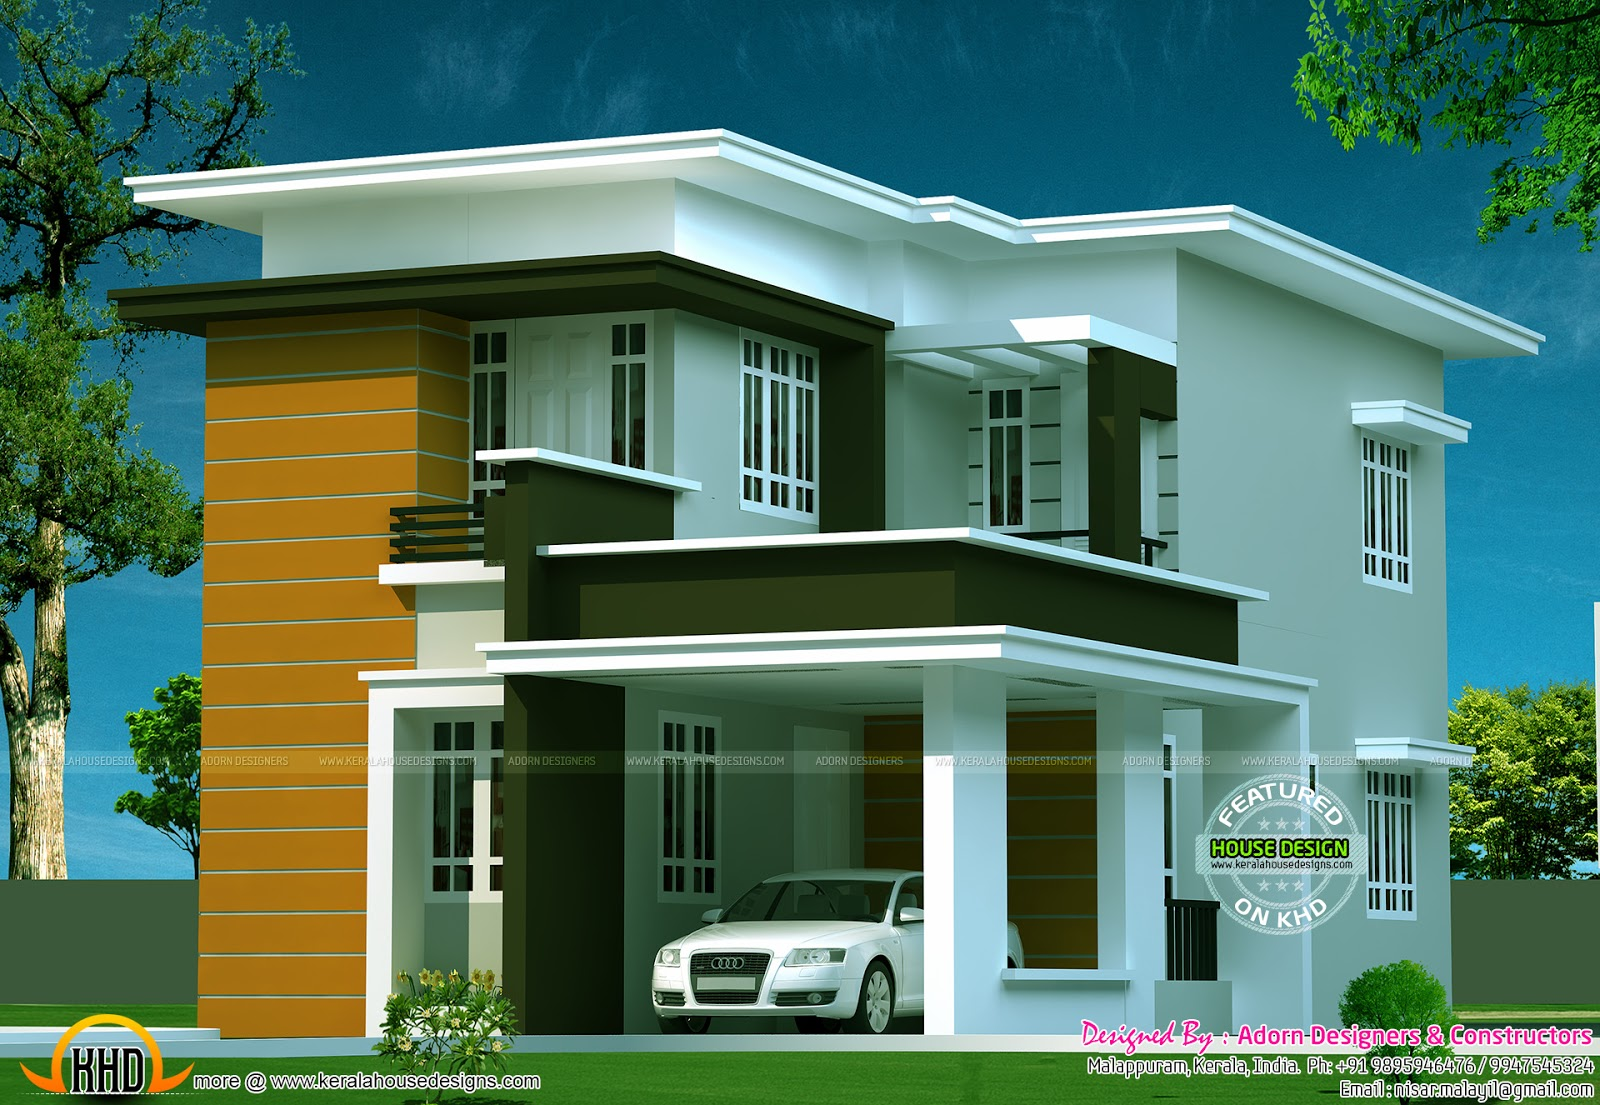 New flat roof house kerala home design and floor plans for Design small house pictures